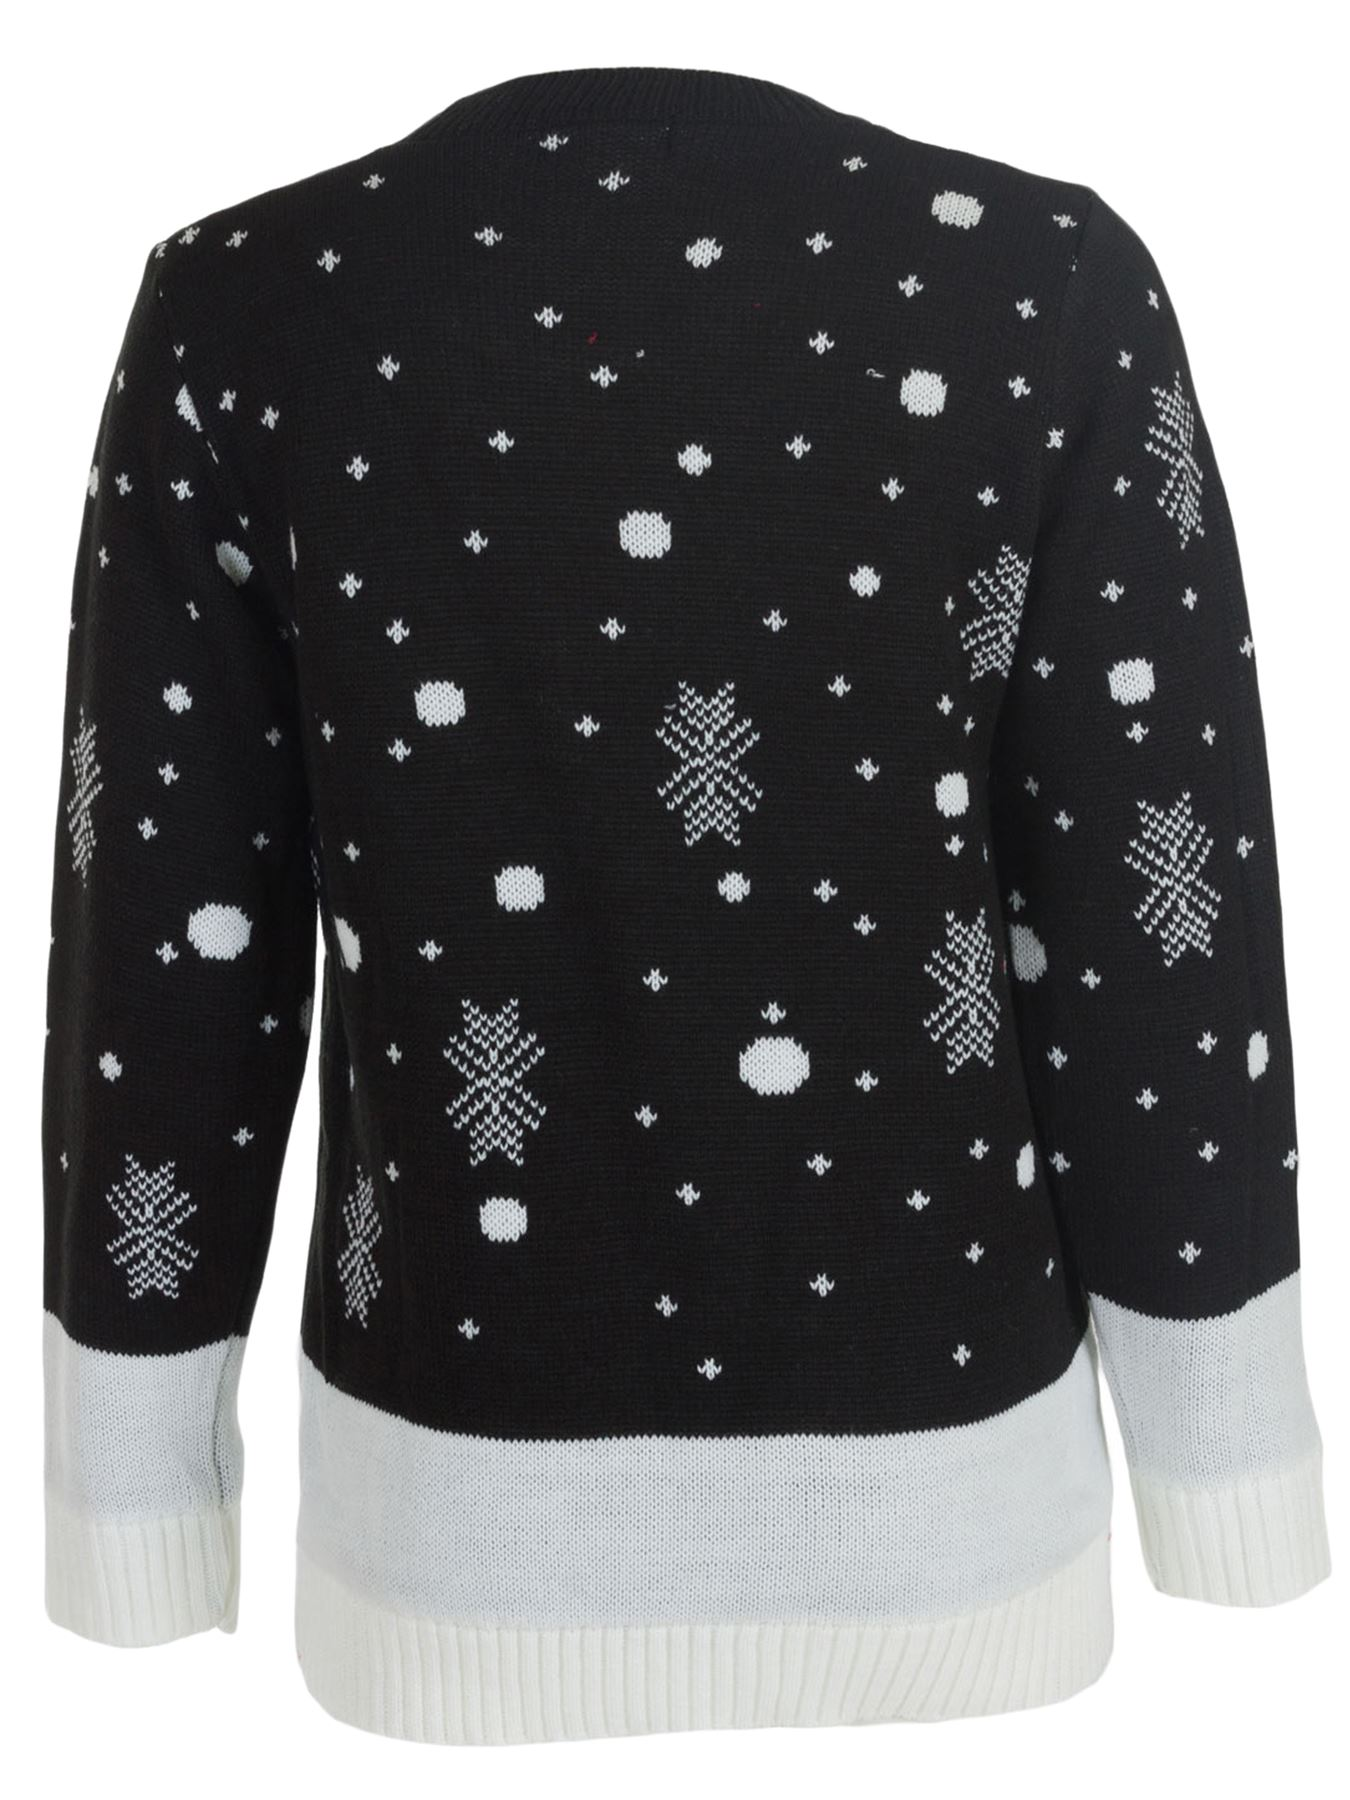 Unisex Christmas Jumper Kids Girl Knitted Party Sweater Smiling Rudolph Reindeer